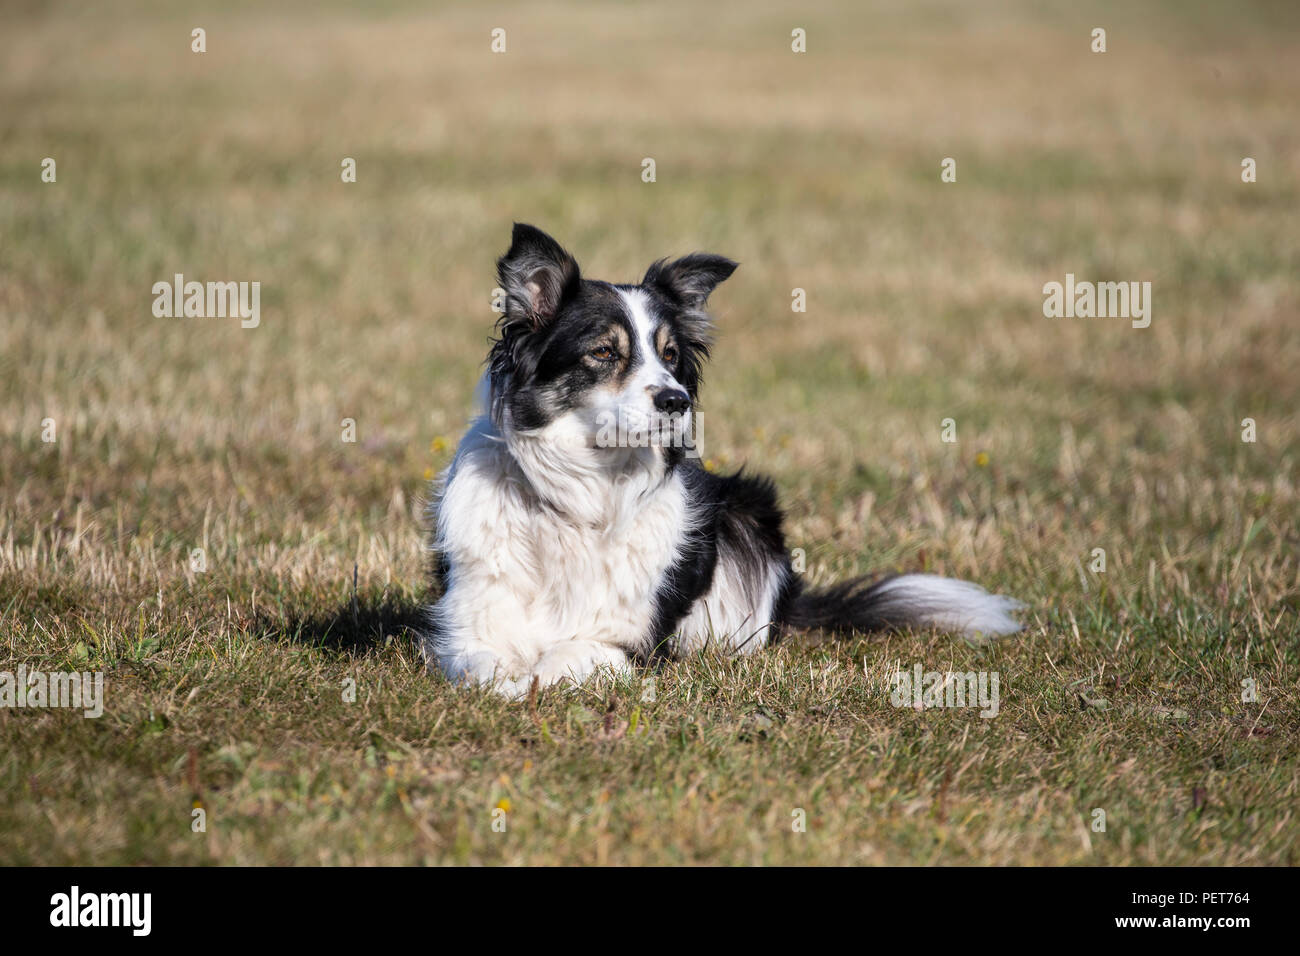 Border Collie dog Canis lupus familiaris lying down on grass but with alert gaze - Stock Image